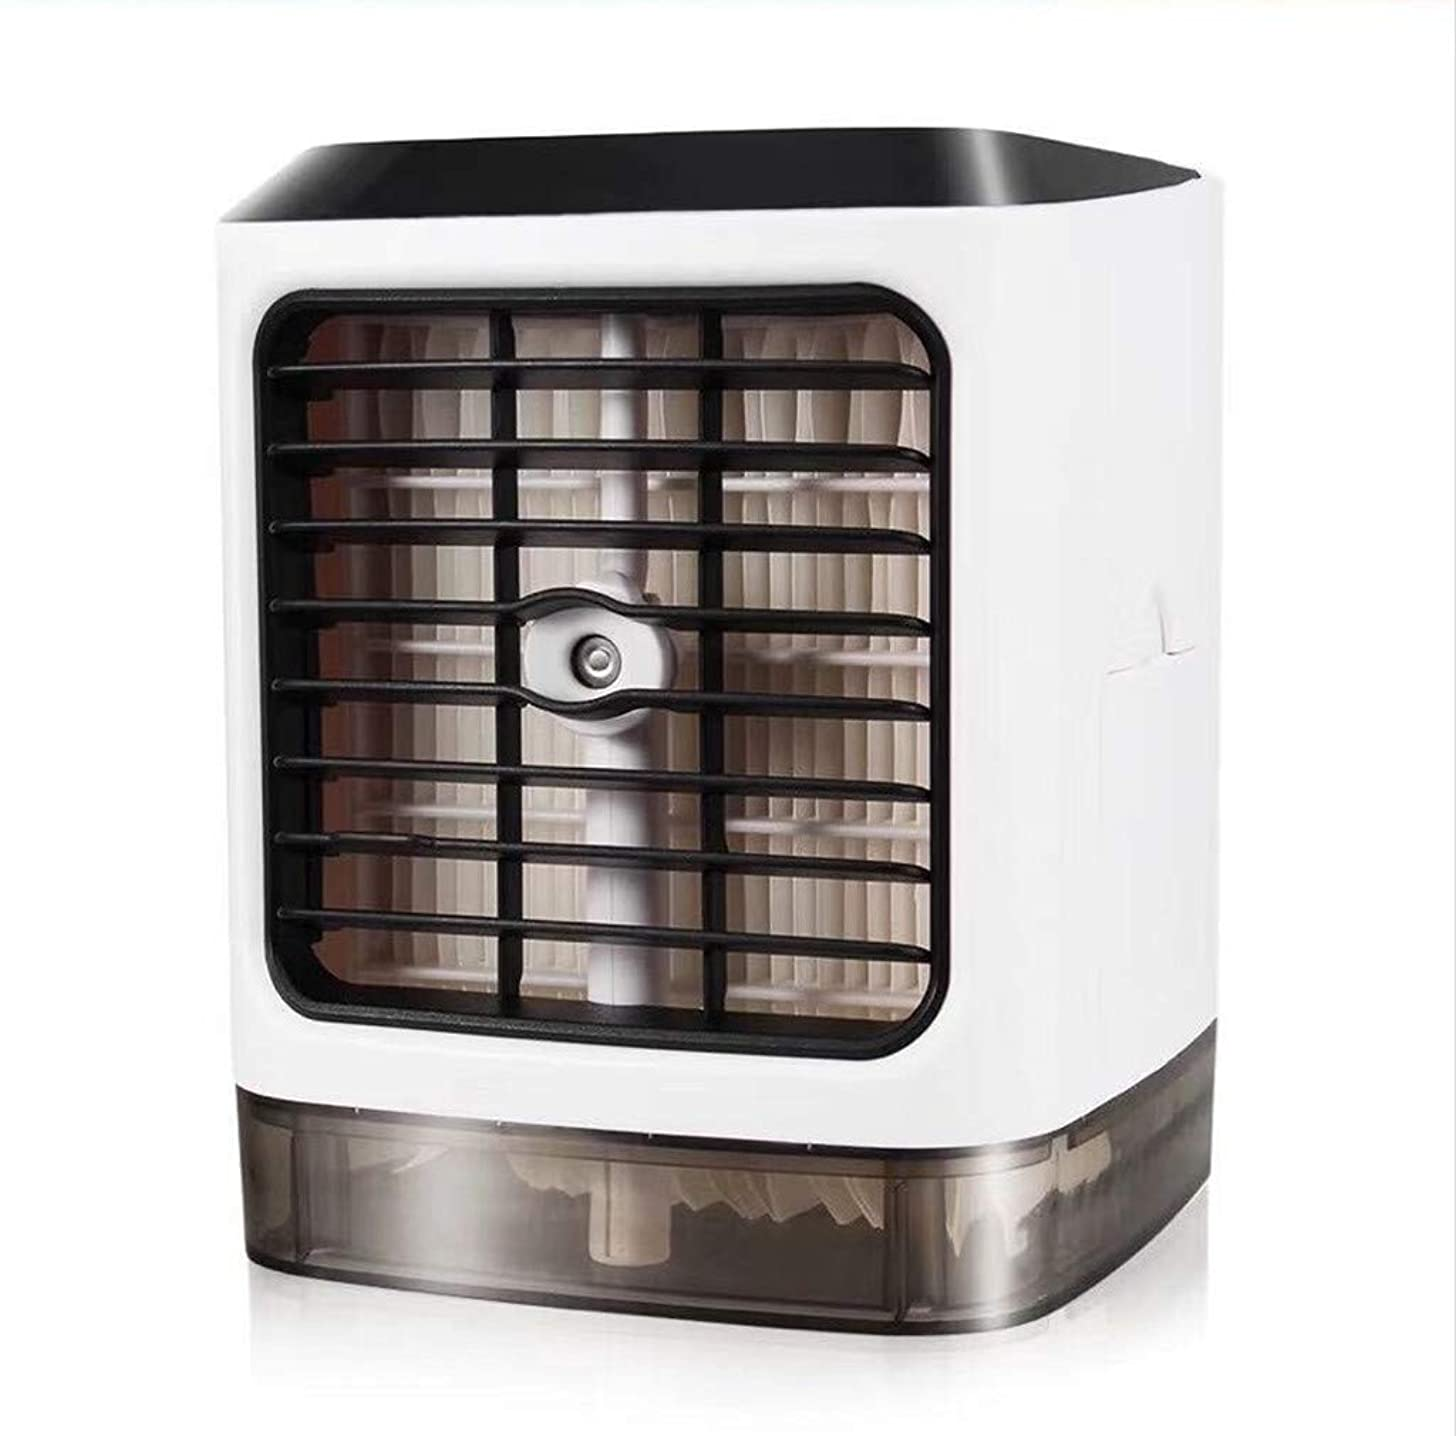 Transser Personal Air Conditioner,USB Mini Portable Air Conditioner Humidifier Air Cooler Upgraded Mute Night Light 8-12 Degrees for Home/Office/Outdoor/Sleep